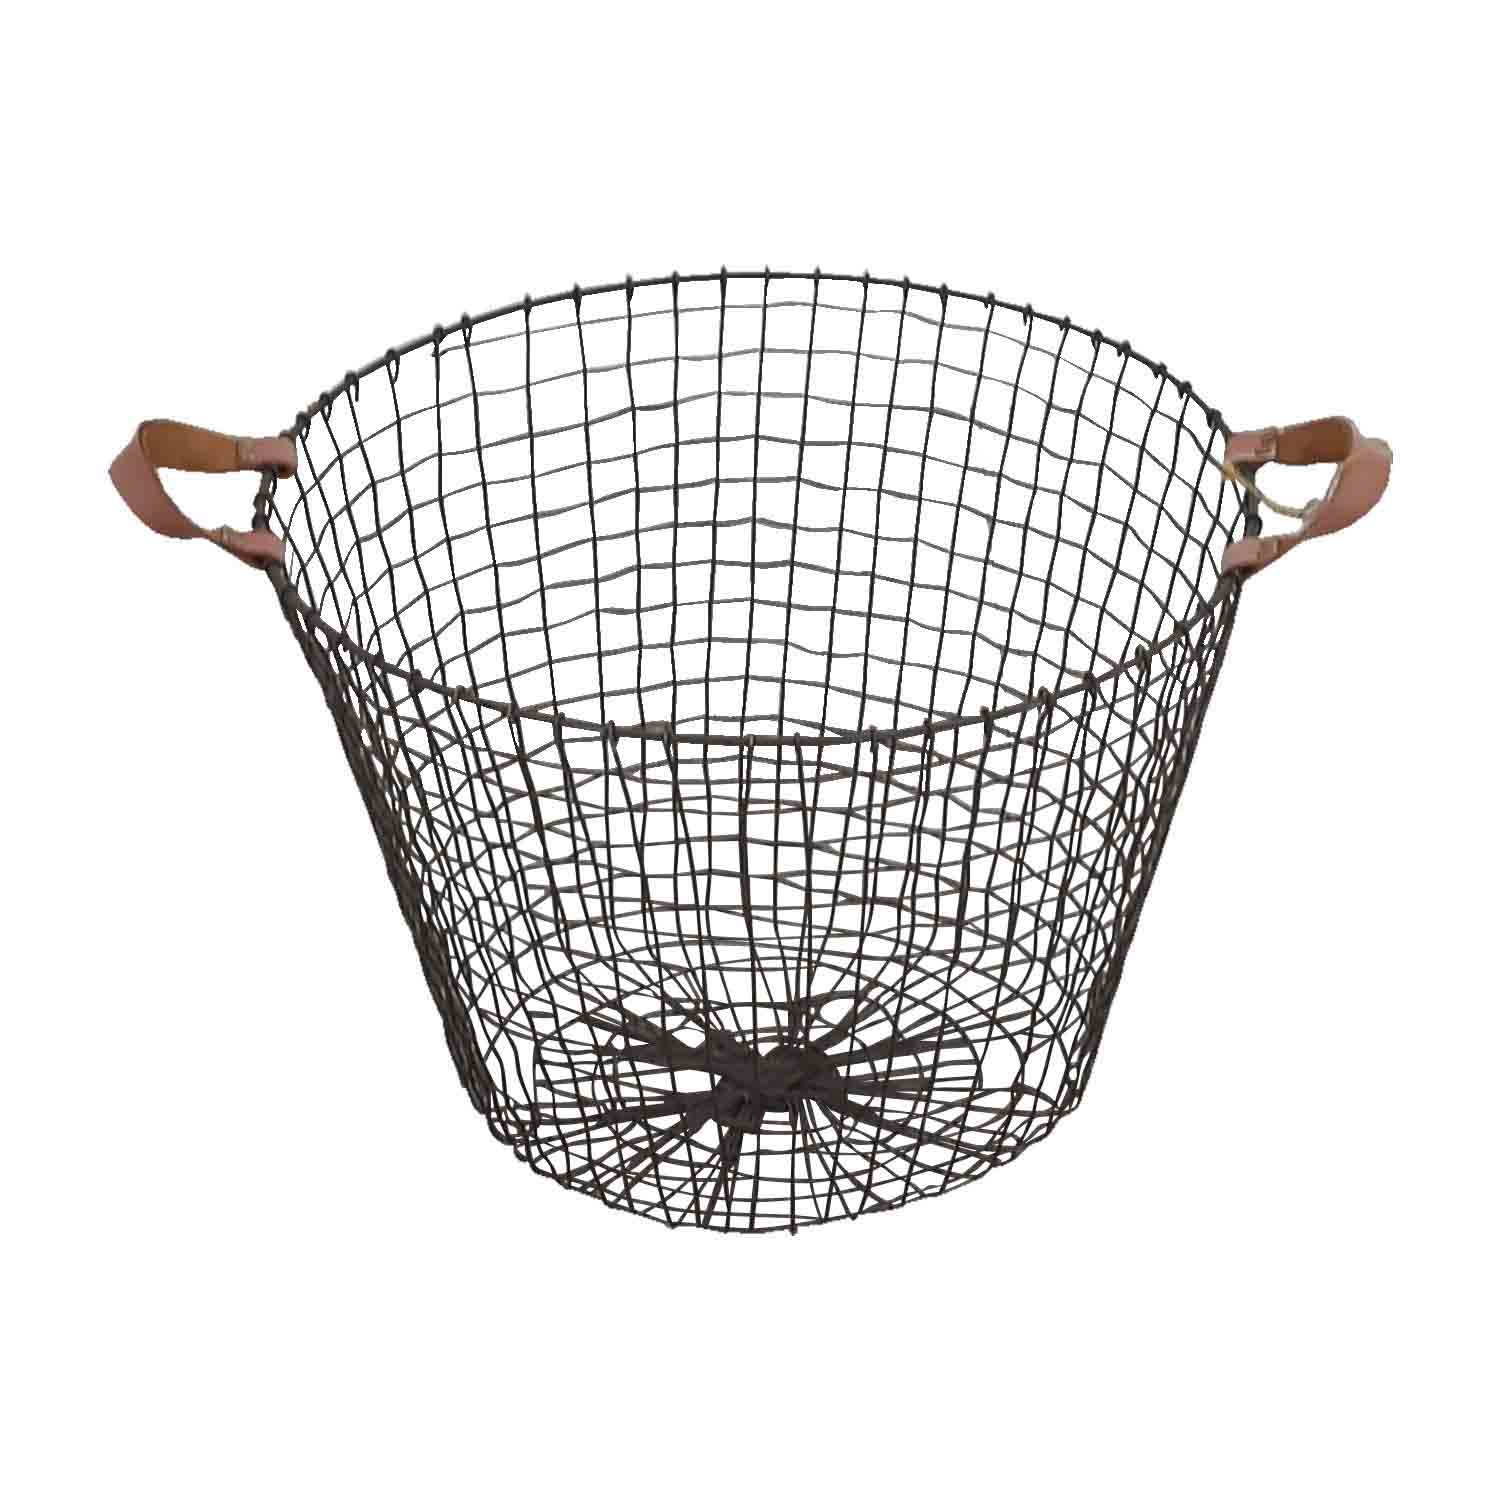 HomeGoods HomeGoods Metal and Leather Basket Decorative Accents